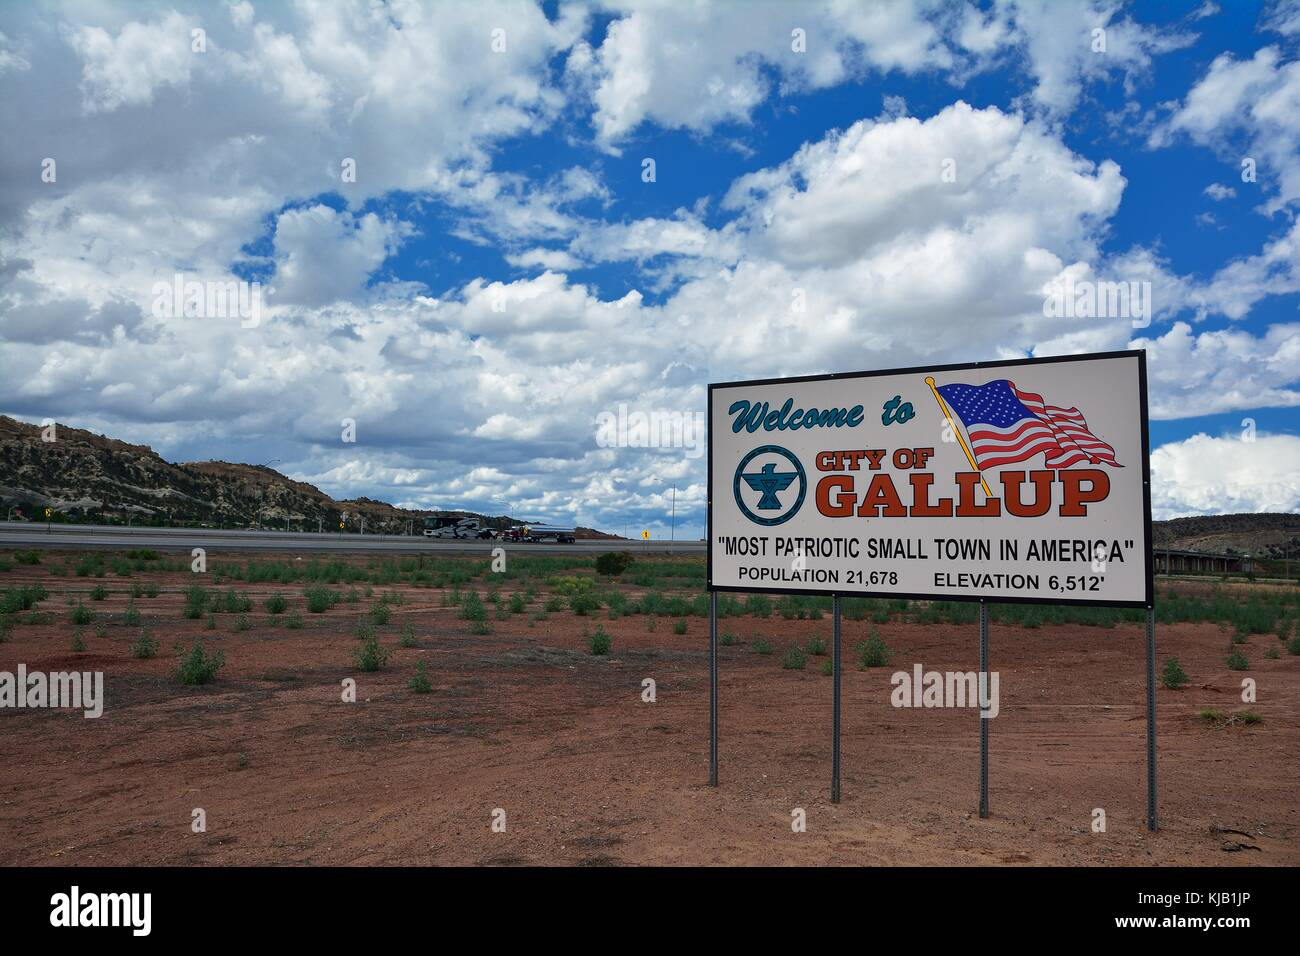 GALLUP, NEW MEXICO - JULY 22: Welcome sign to Gallup, most patriotic small town in America on July 22, 2017 in Gallup, Stock Photo